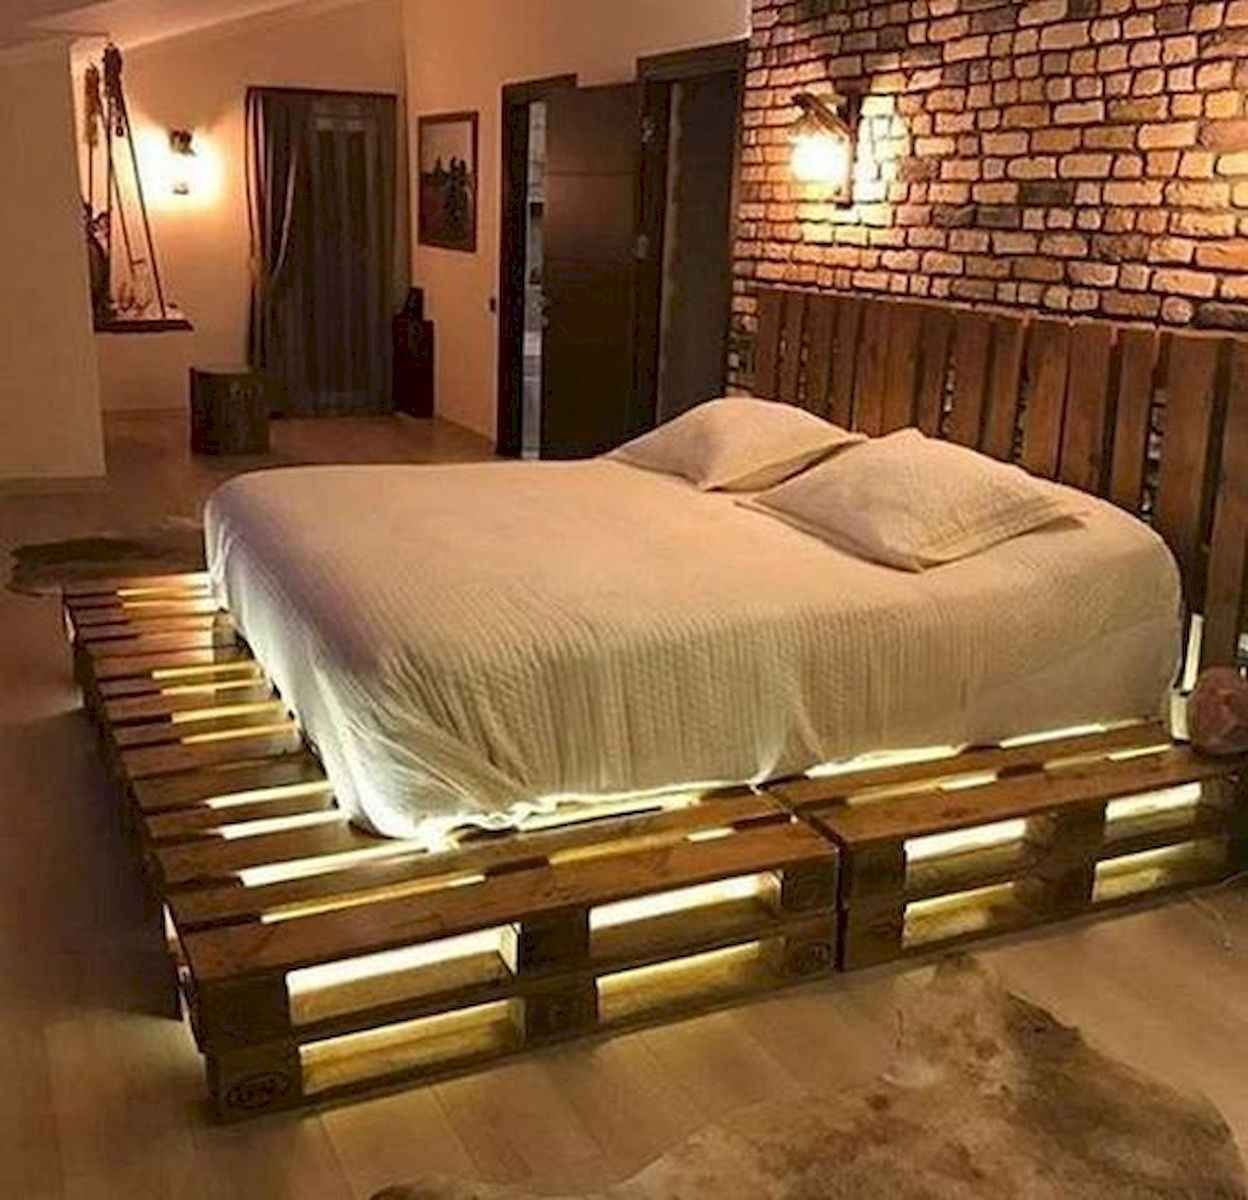 Crazy Diy Home In 2020 Pallet Home Decor Pallet Furniture Diy Pallet Bed